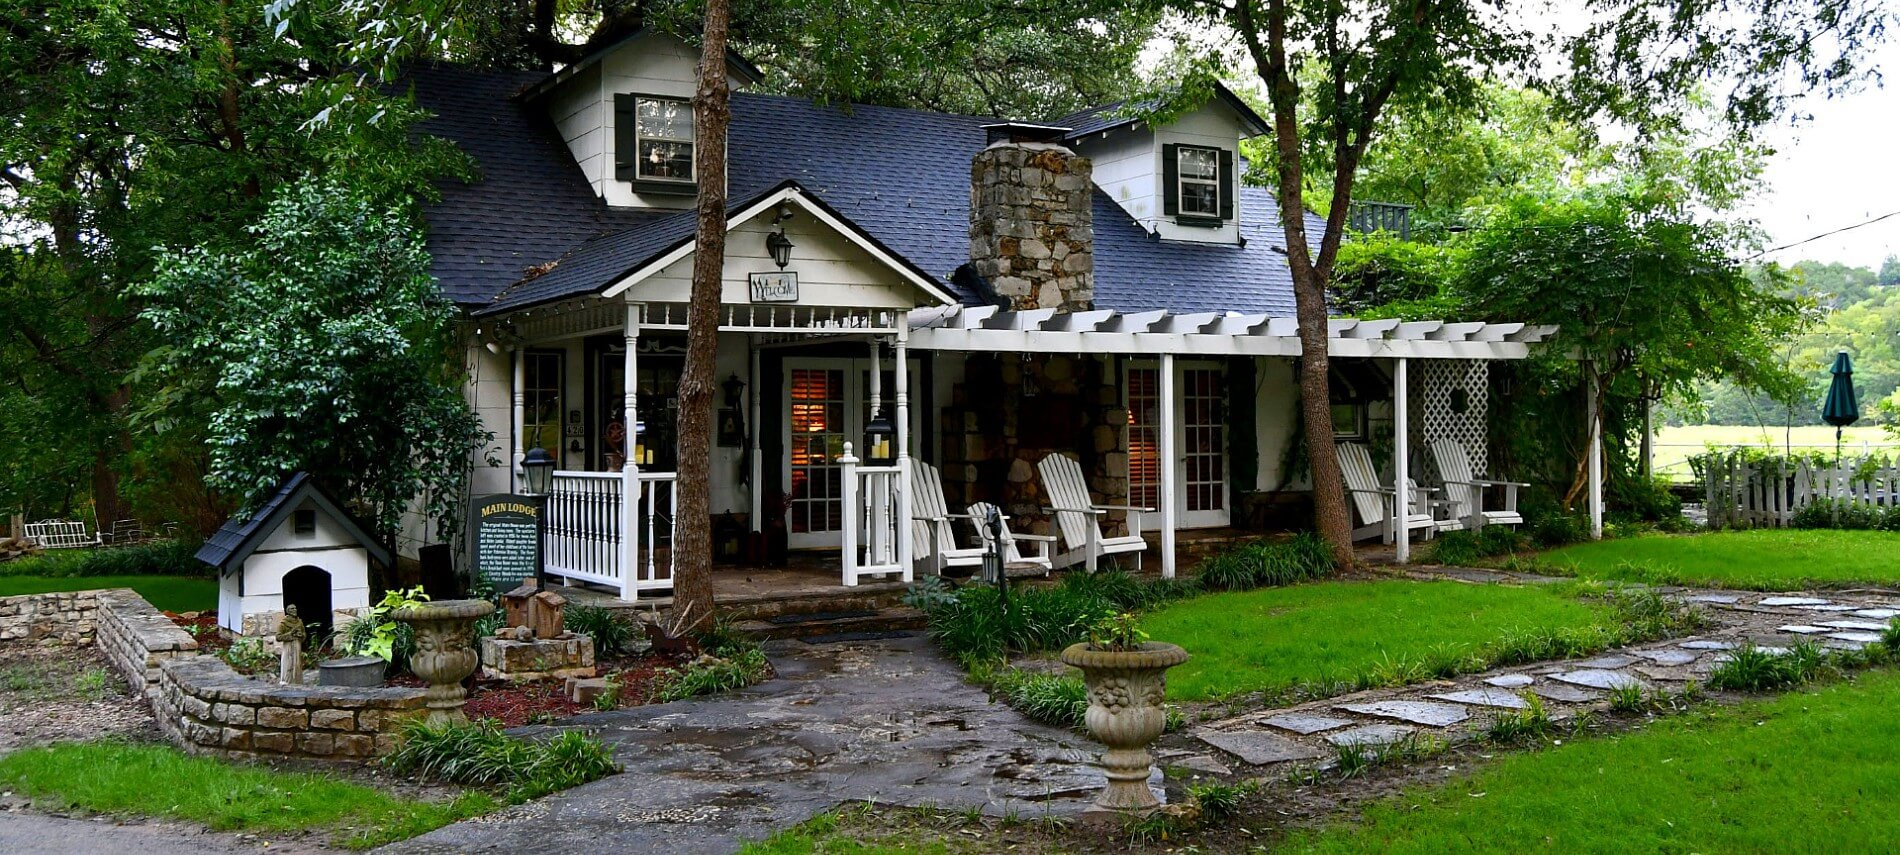 Pretty cabin with a black roof fronted by a stone path and green lawn.